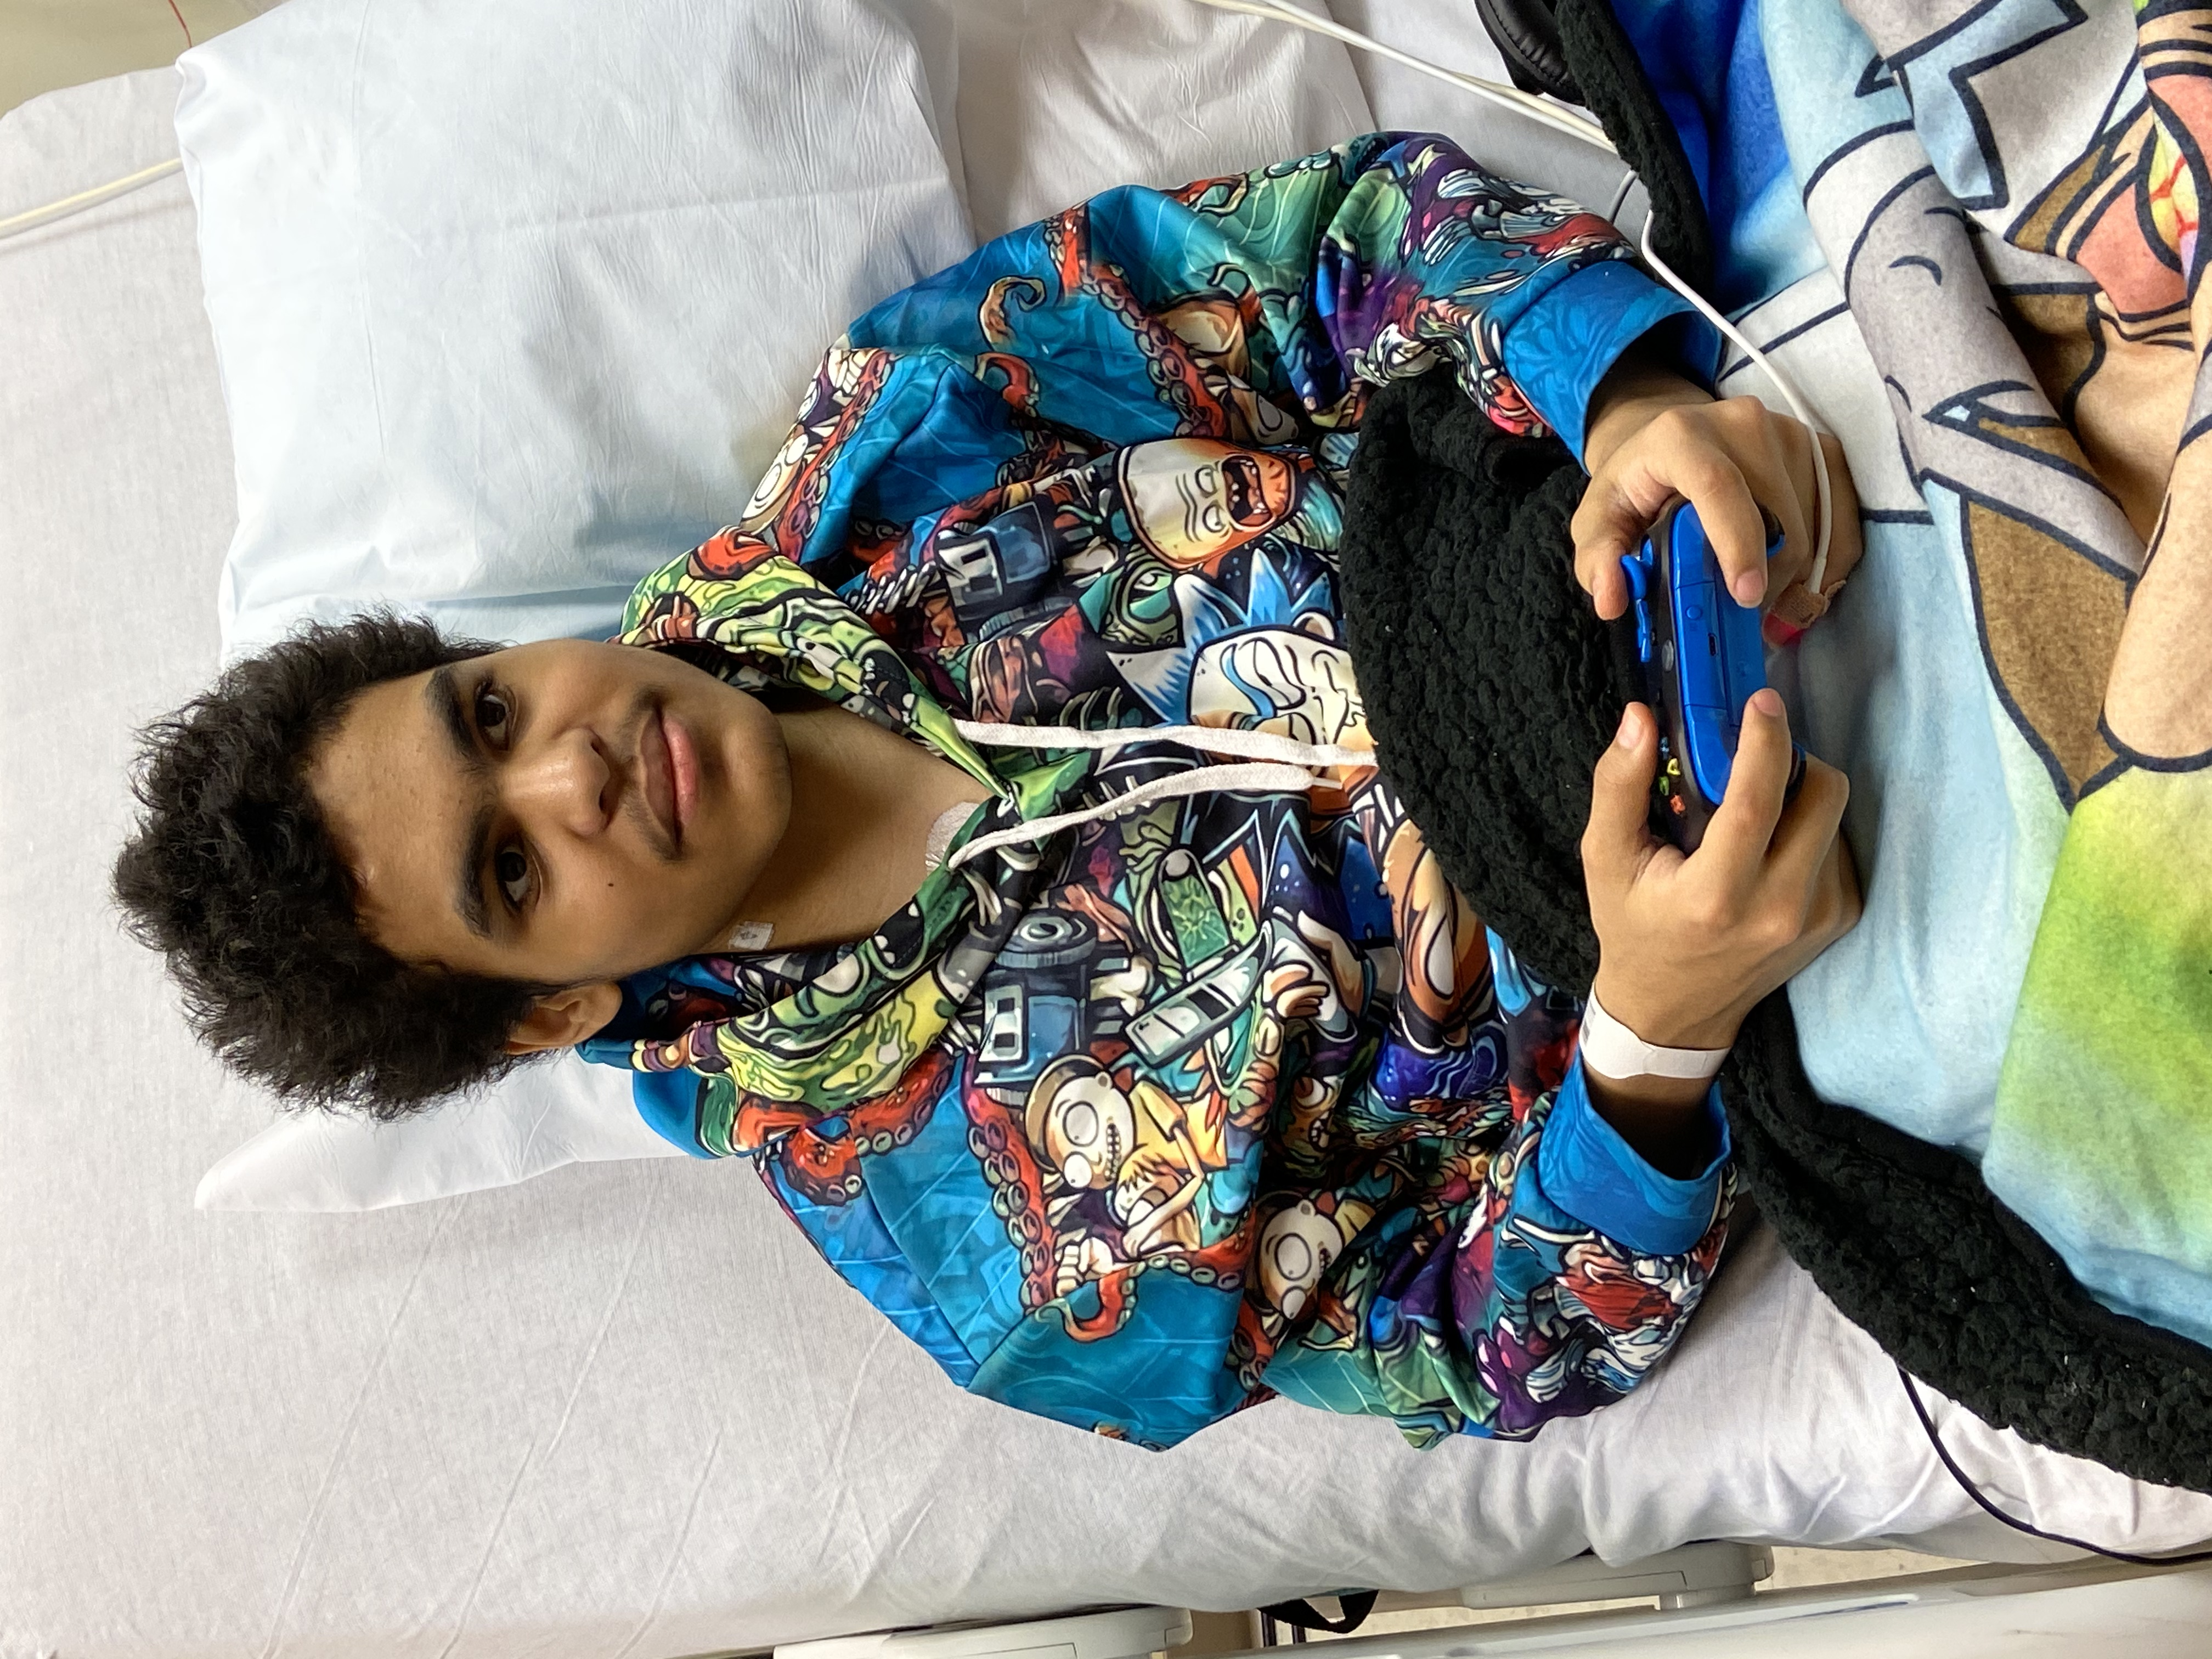 Patient playing game